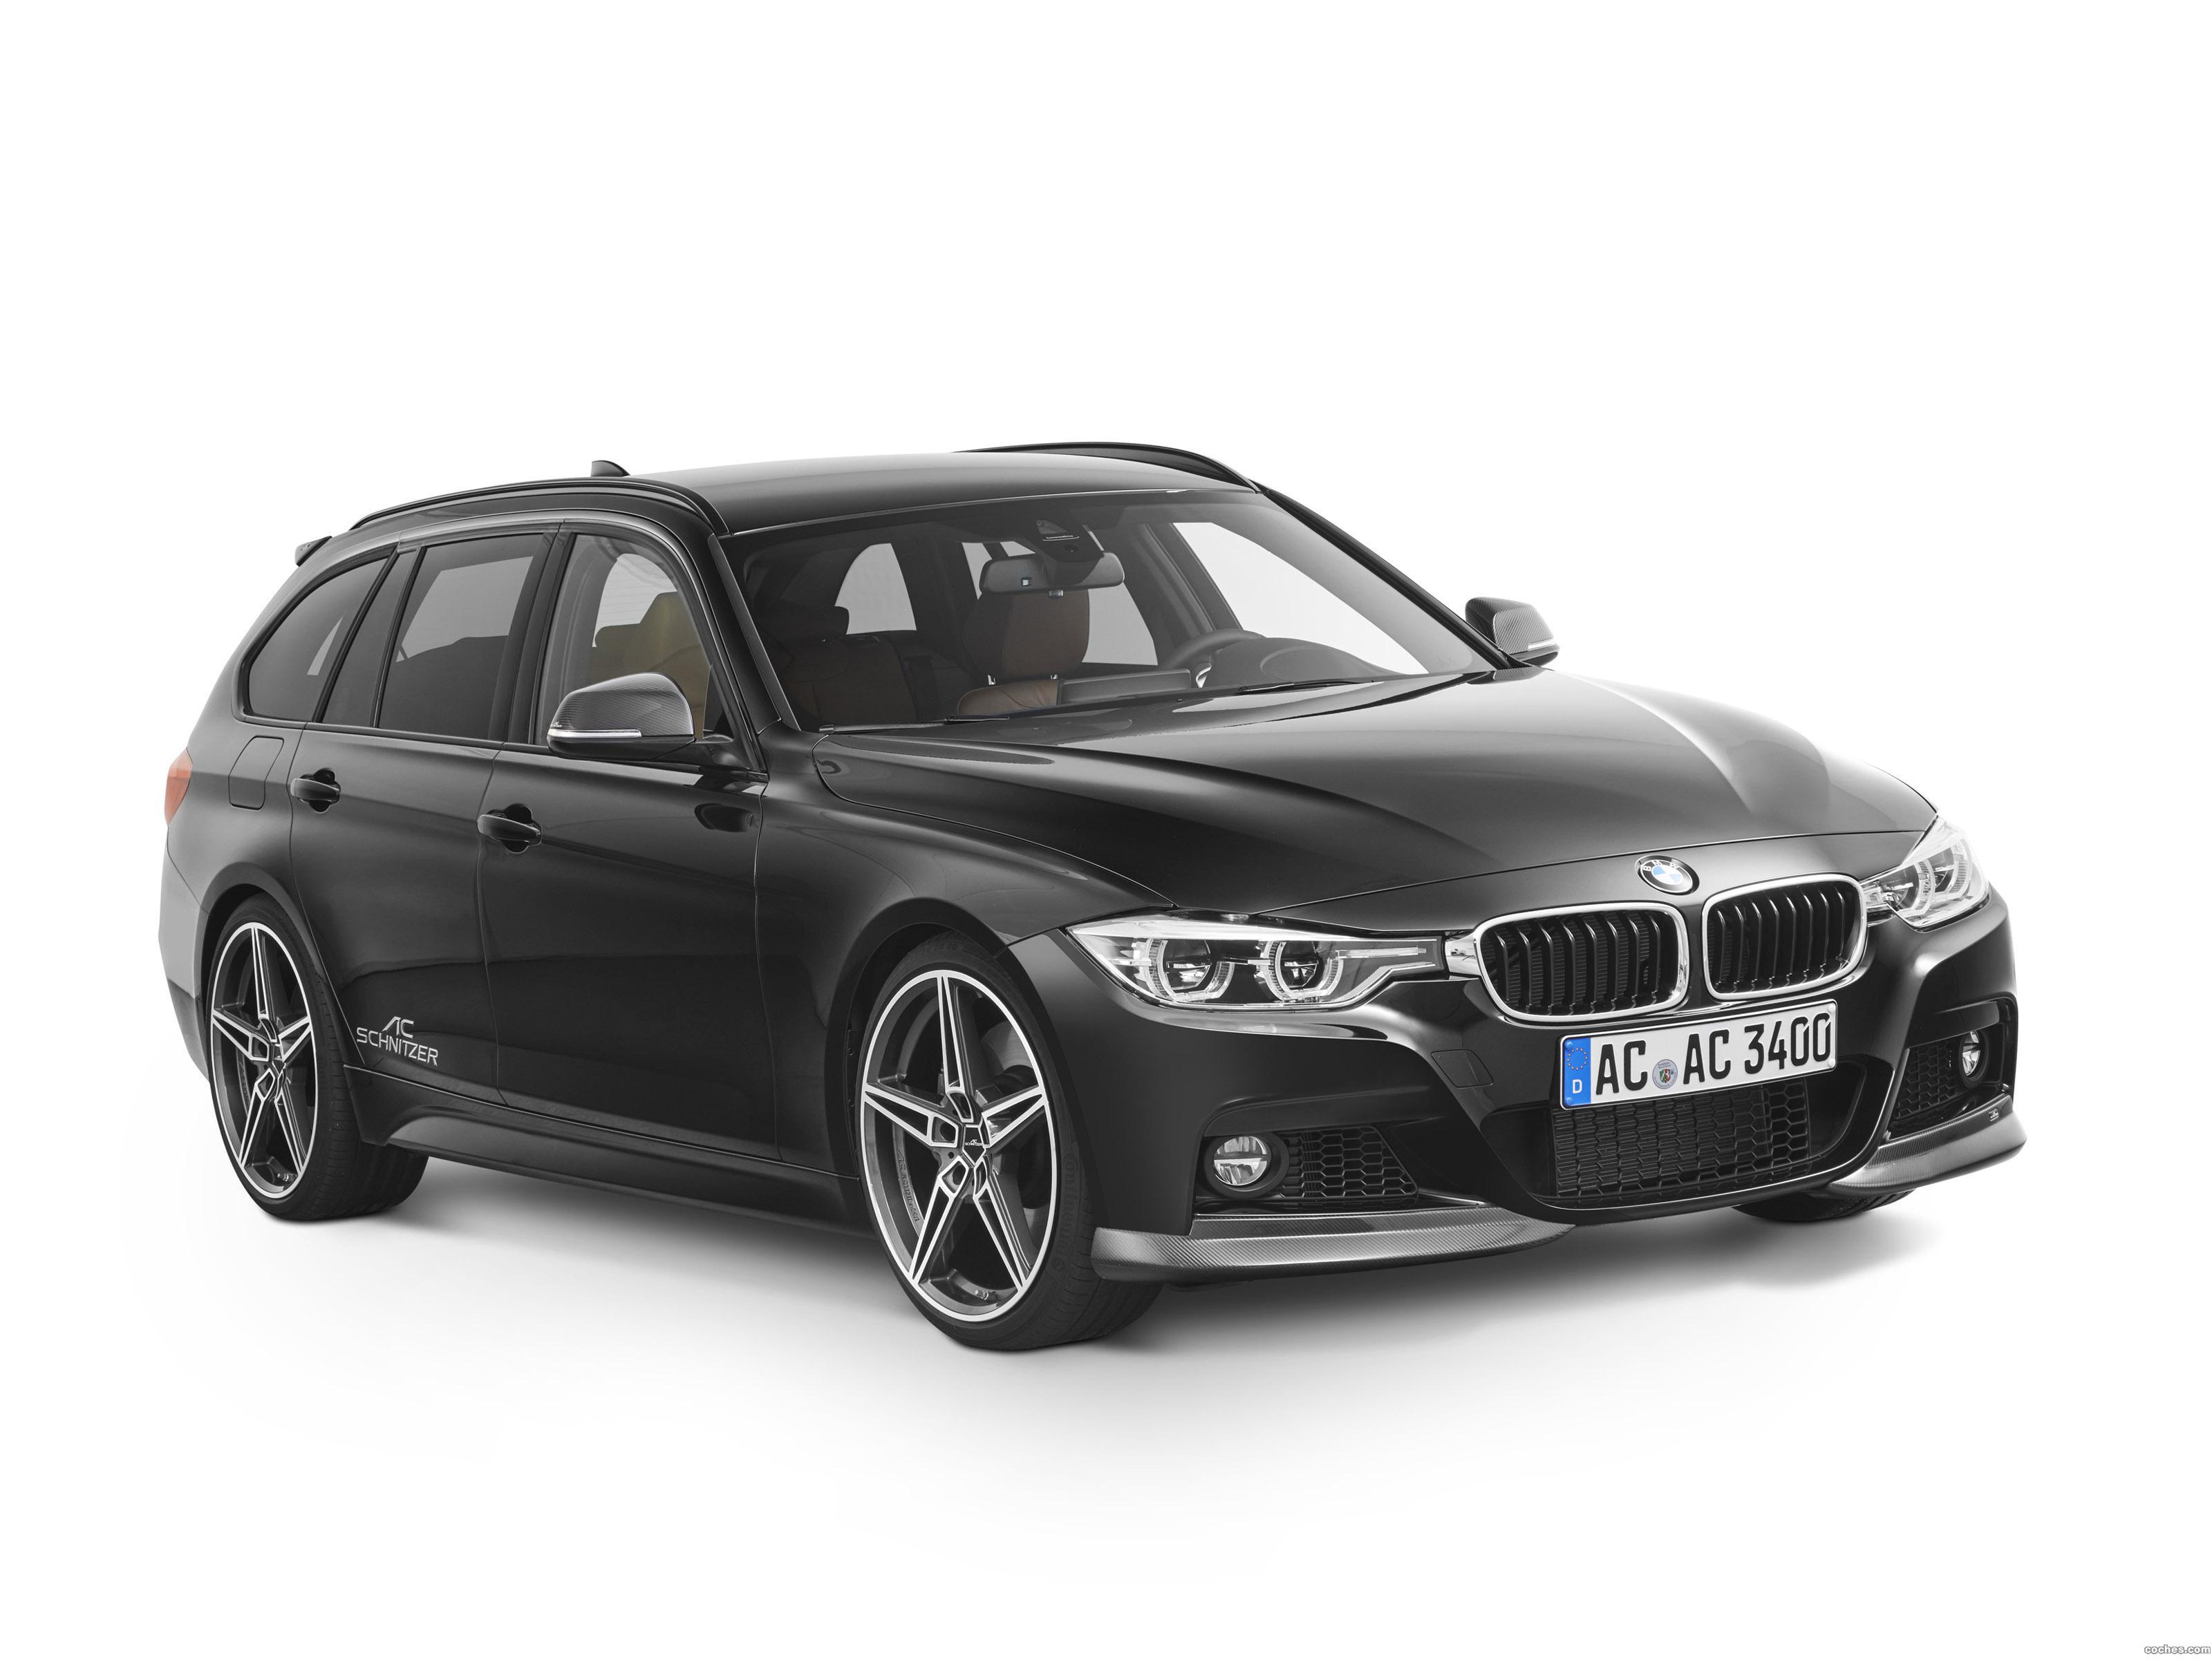 fotos de bmw ac schnitzer serie 3 acs3 touring f31 2015. Black Bedroom Furniture Sets. Home Design Ideas